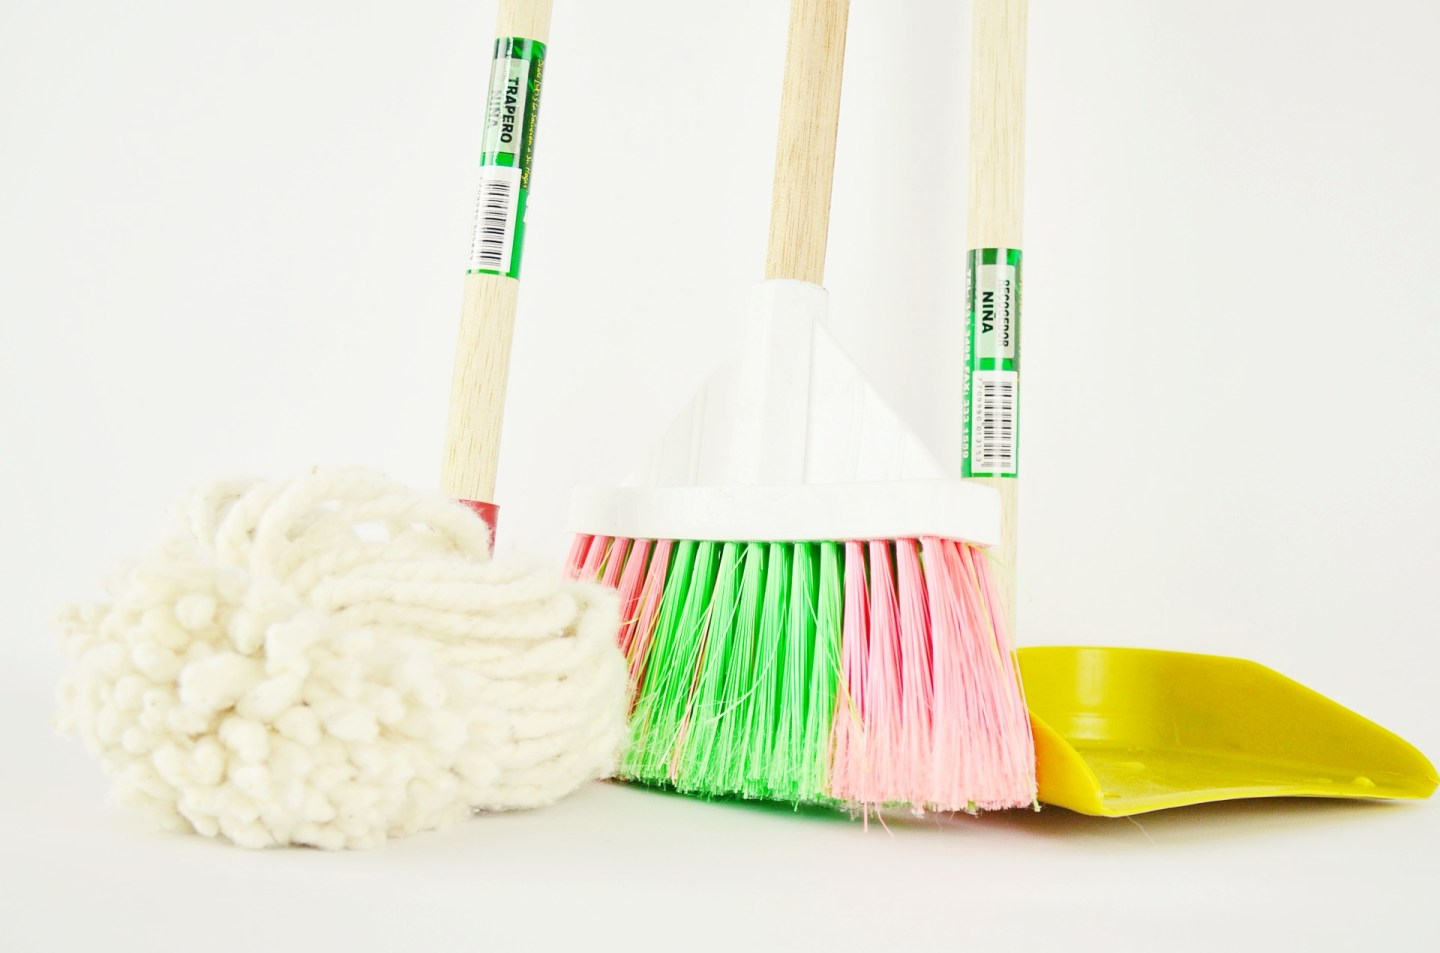 Three cleaning tools against a white background. A traditional mop, a broom, and a dustpan are lined up, where we see the main part of the tools and just a little of their handles.